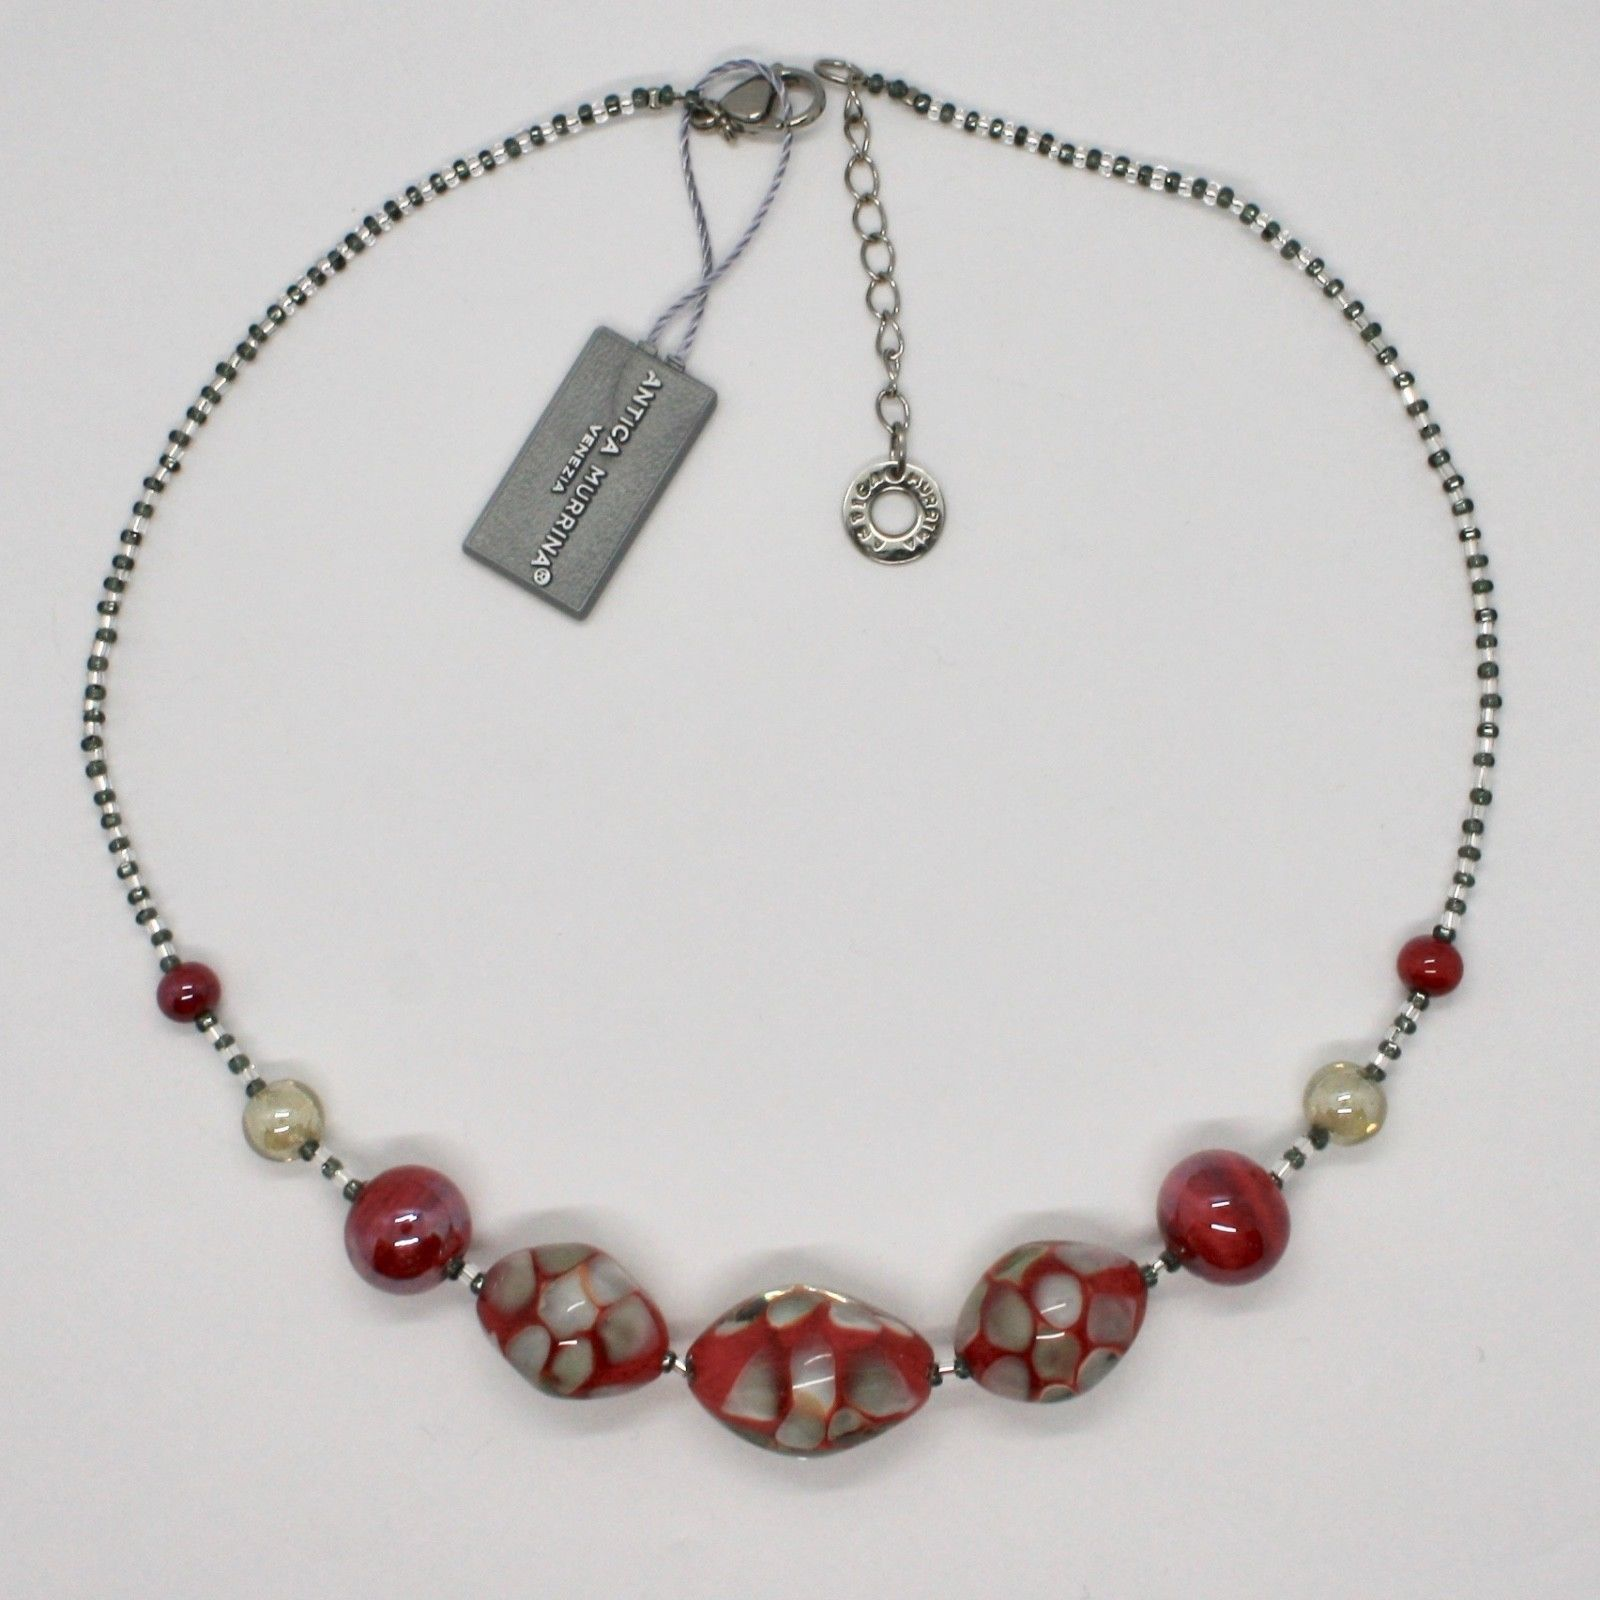 ANTICA MURRINA VENEZIA NECKLACE WITH MURANO GLASS RED BEIGE GREY COA11A31